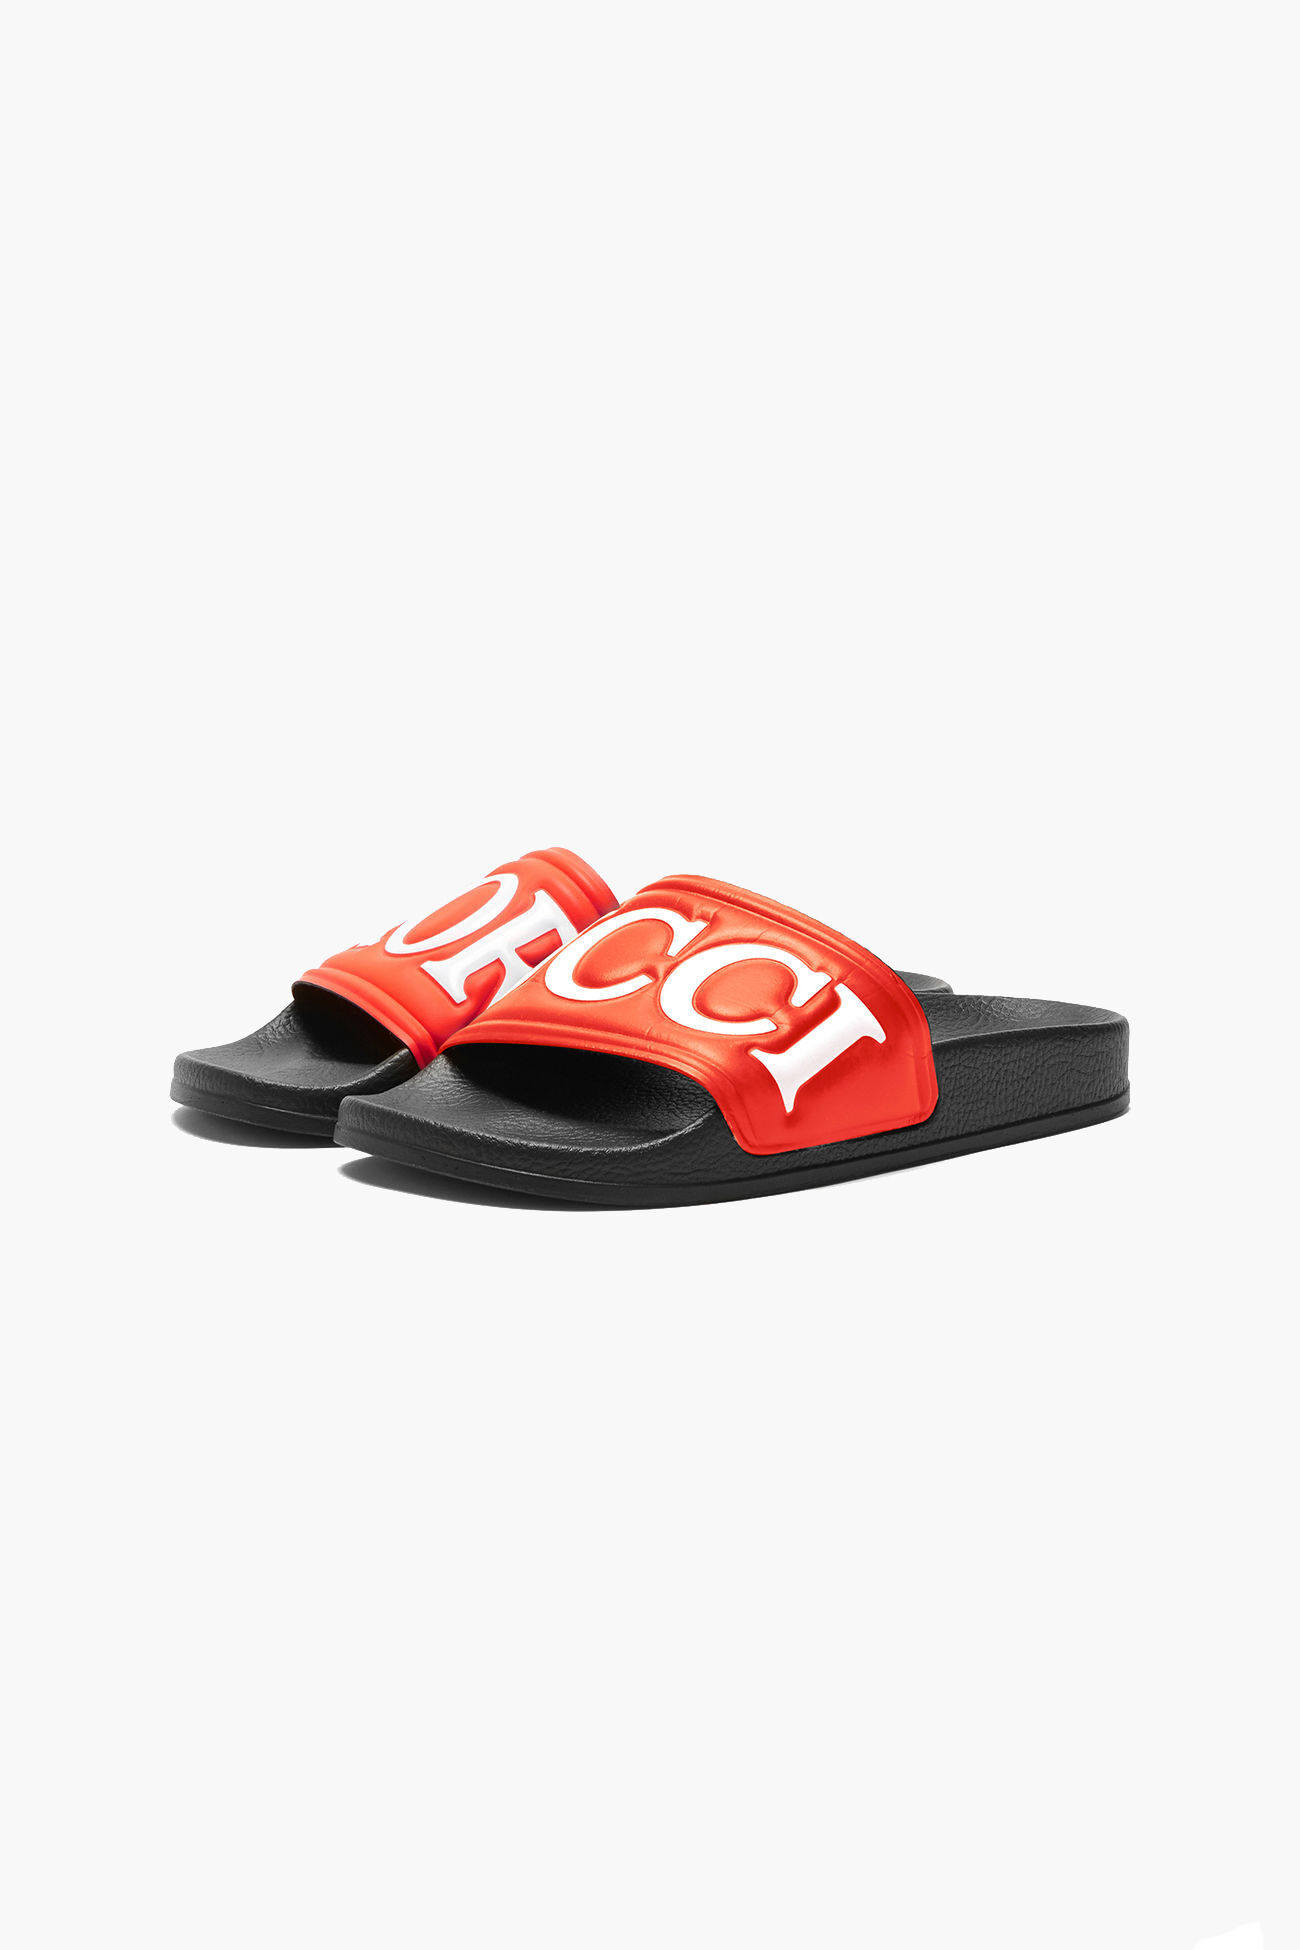 Logo Slides in Red. - size 36 (also in 37,38,39,40) Fiorucci